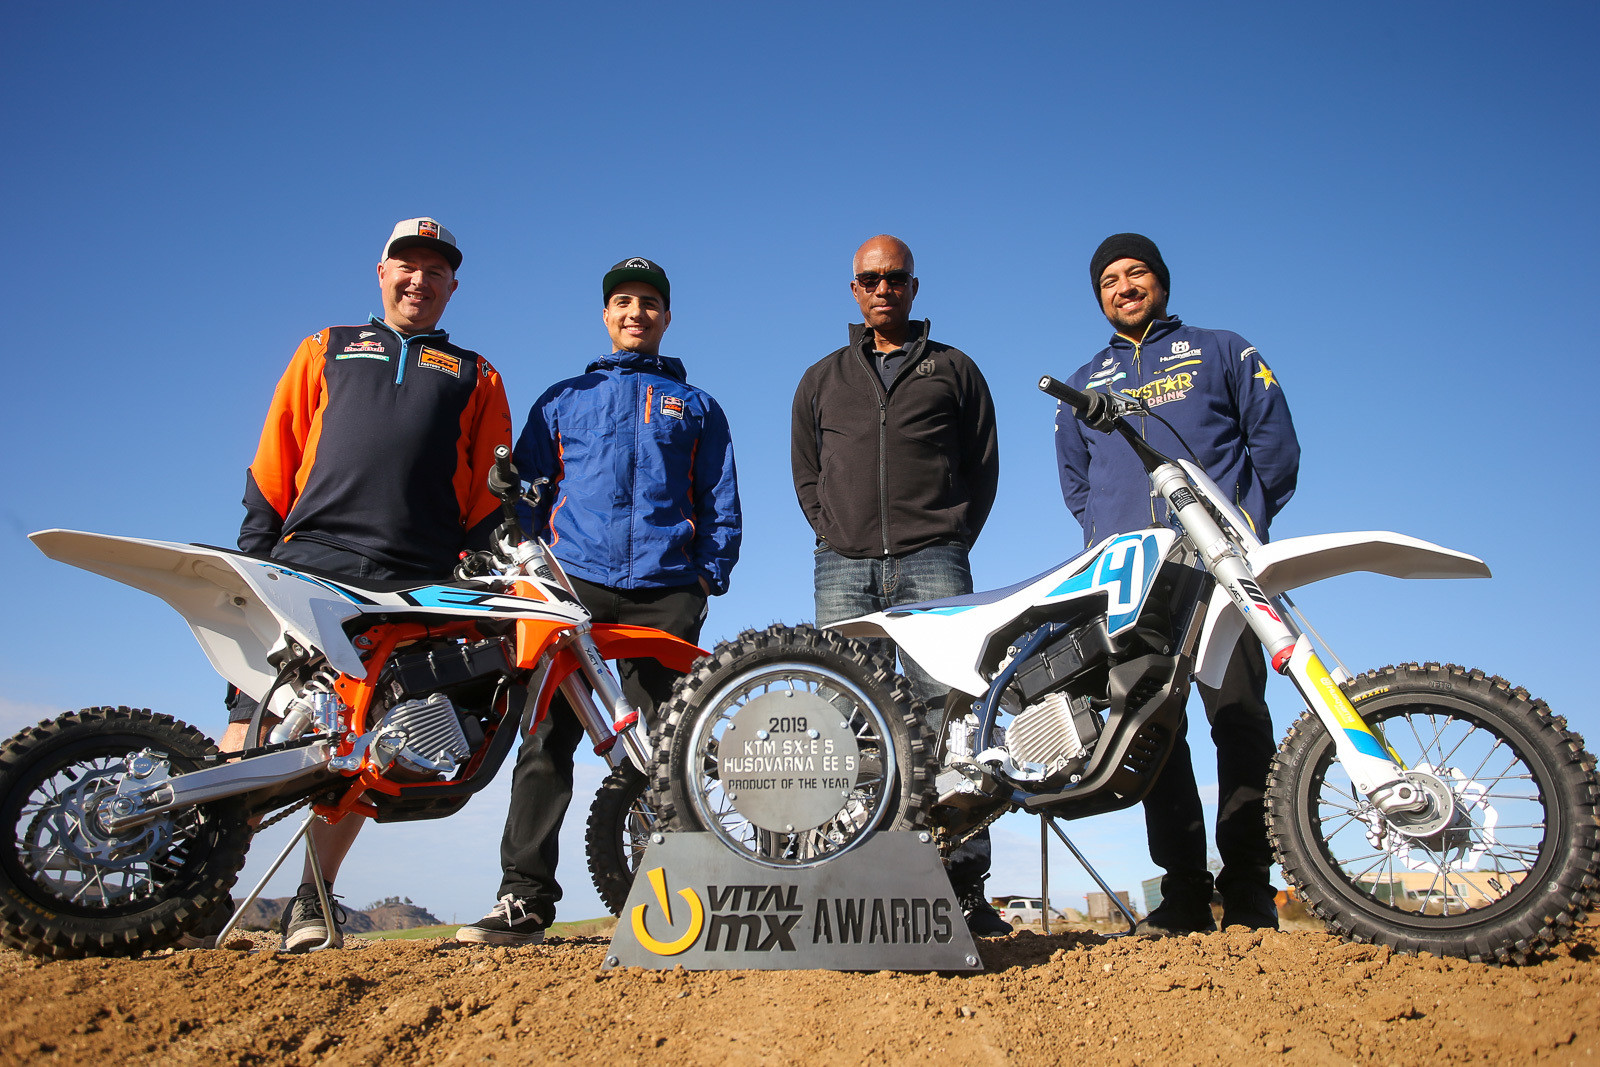 We presented the trophy to the KTM and Husqvarna media crew staff members. From left to right, it's KTM's David O'Connor and Nate Abila, and Husqvarna's Andy Jefferson and Anthony da Graca.